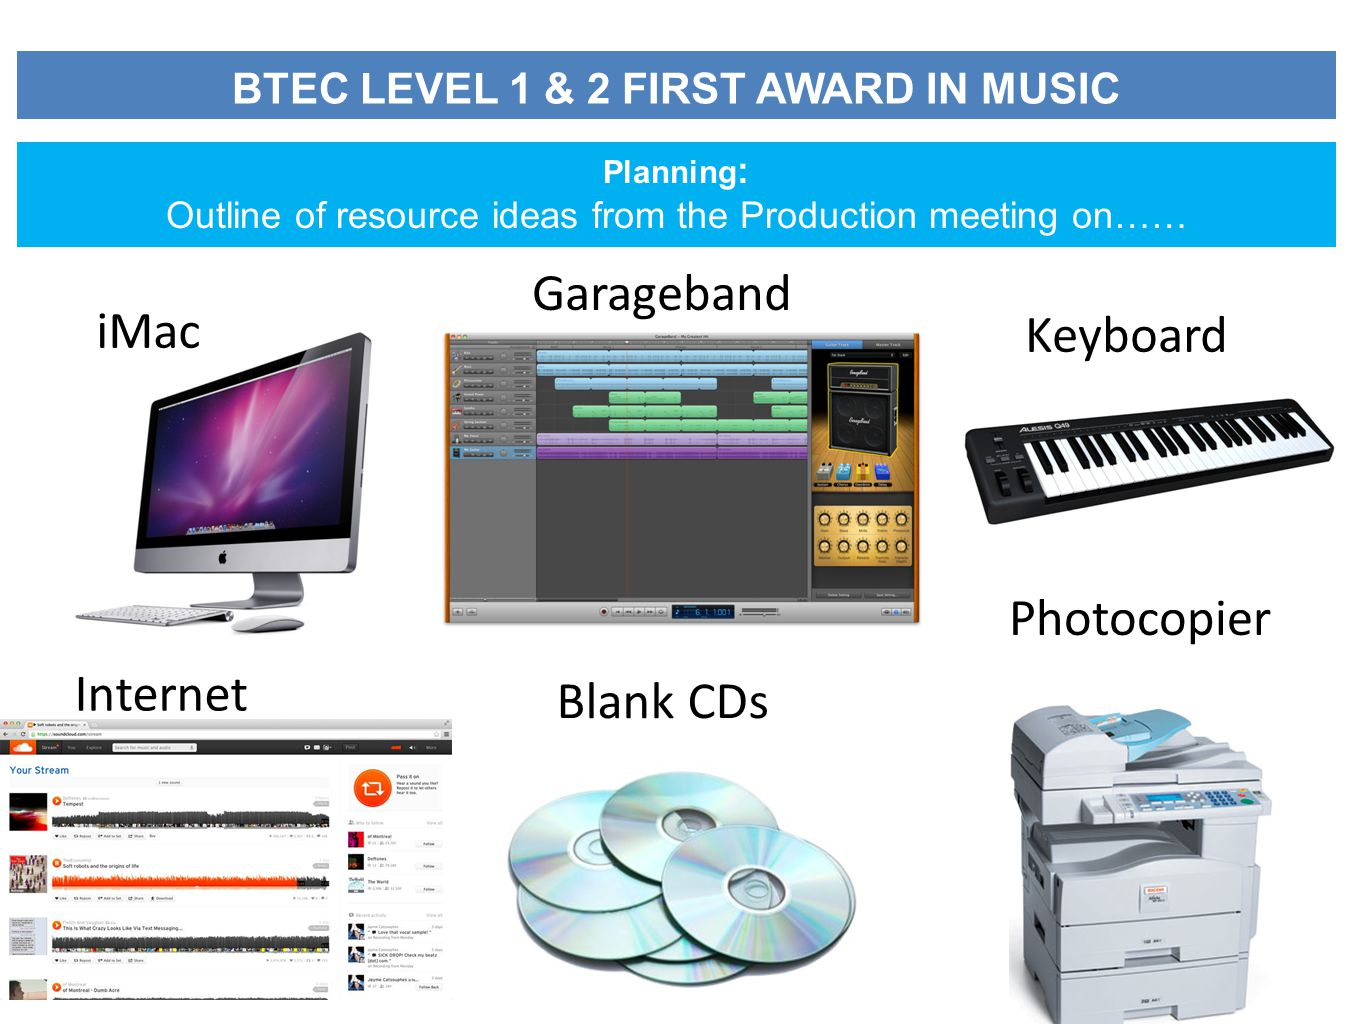 BTEC LEVEL 1 & 2 FIRST AWARD IN MUSIC Planning : Outline of resource ideas from the Production meeting on…… iMac Garageband Keyboard Internet Blank CDs Photocopier